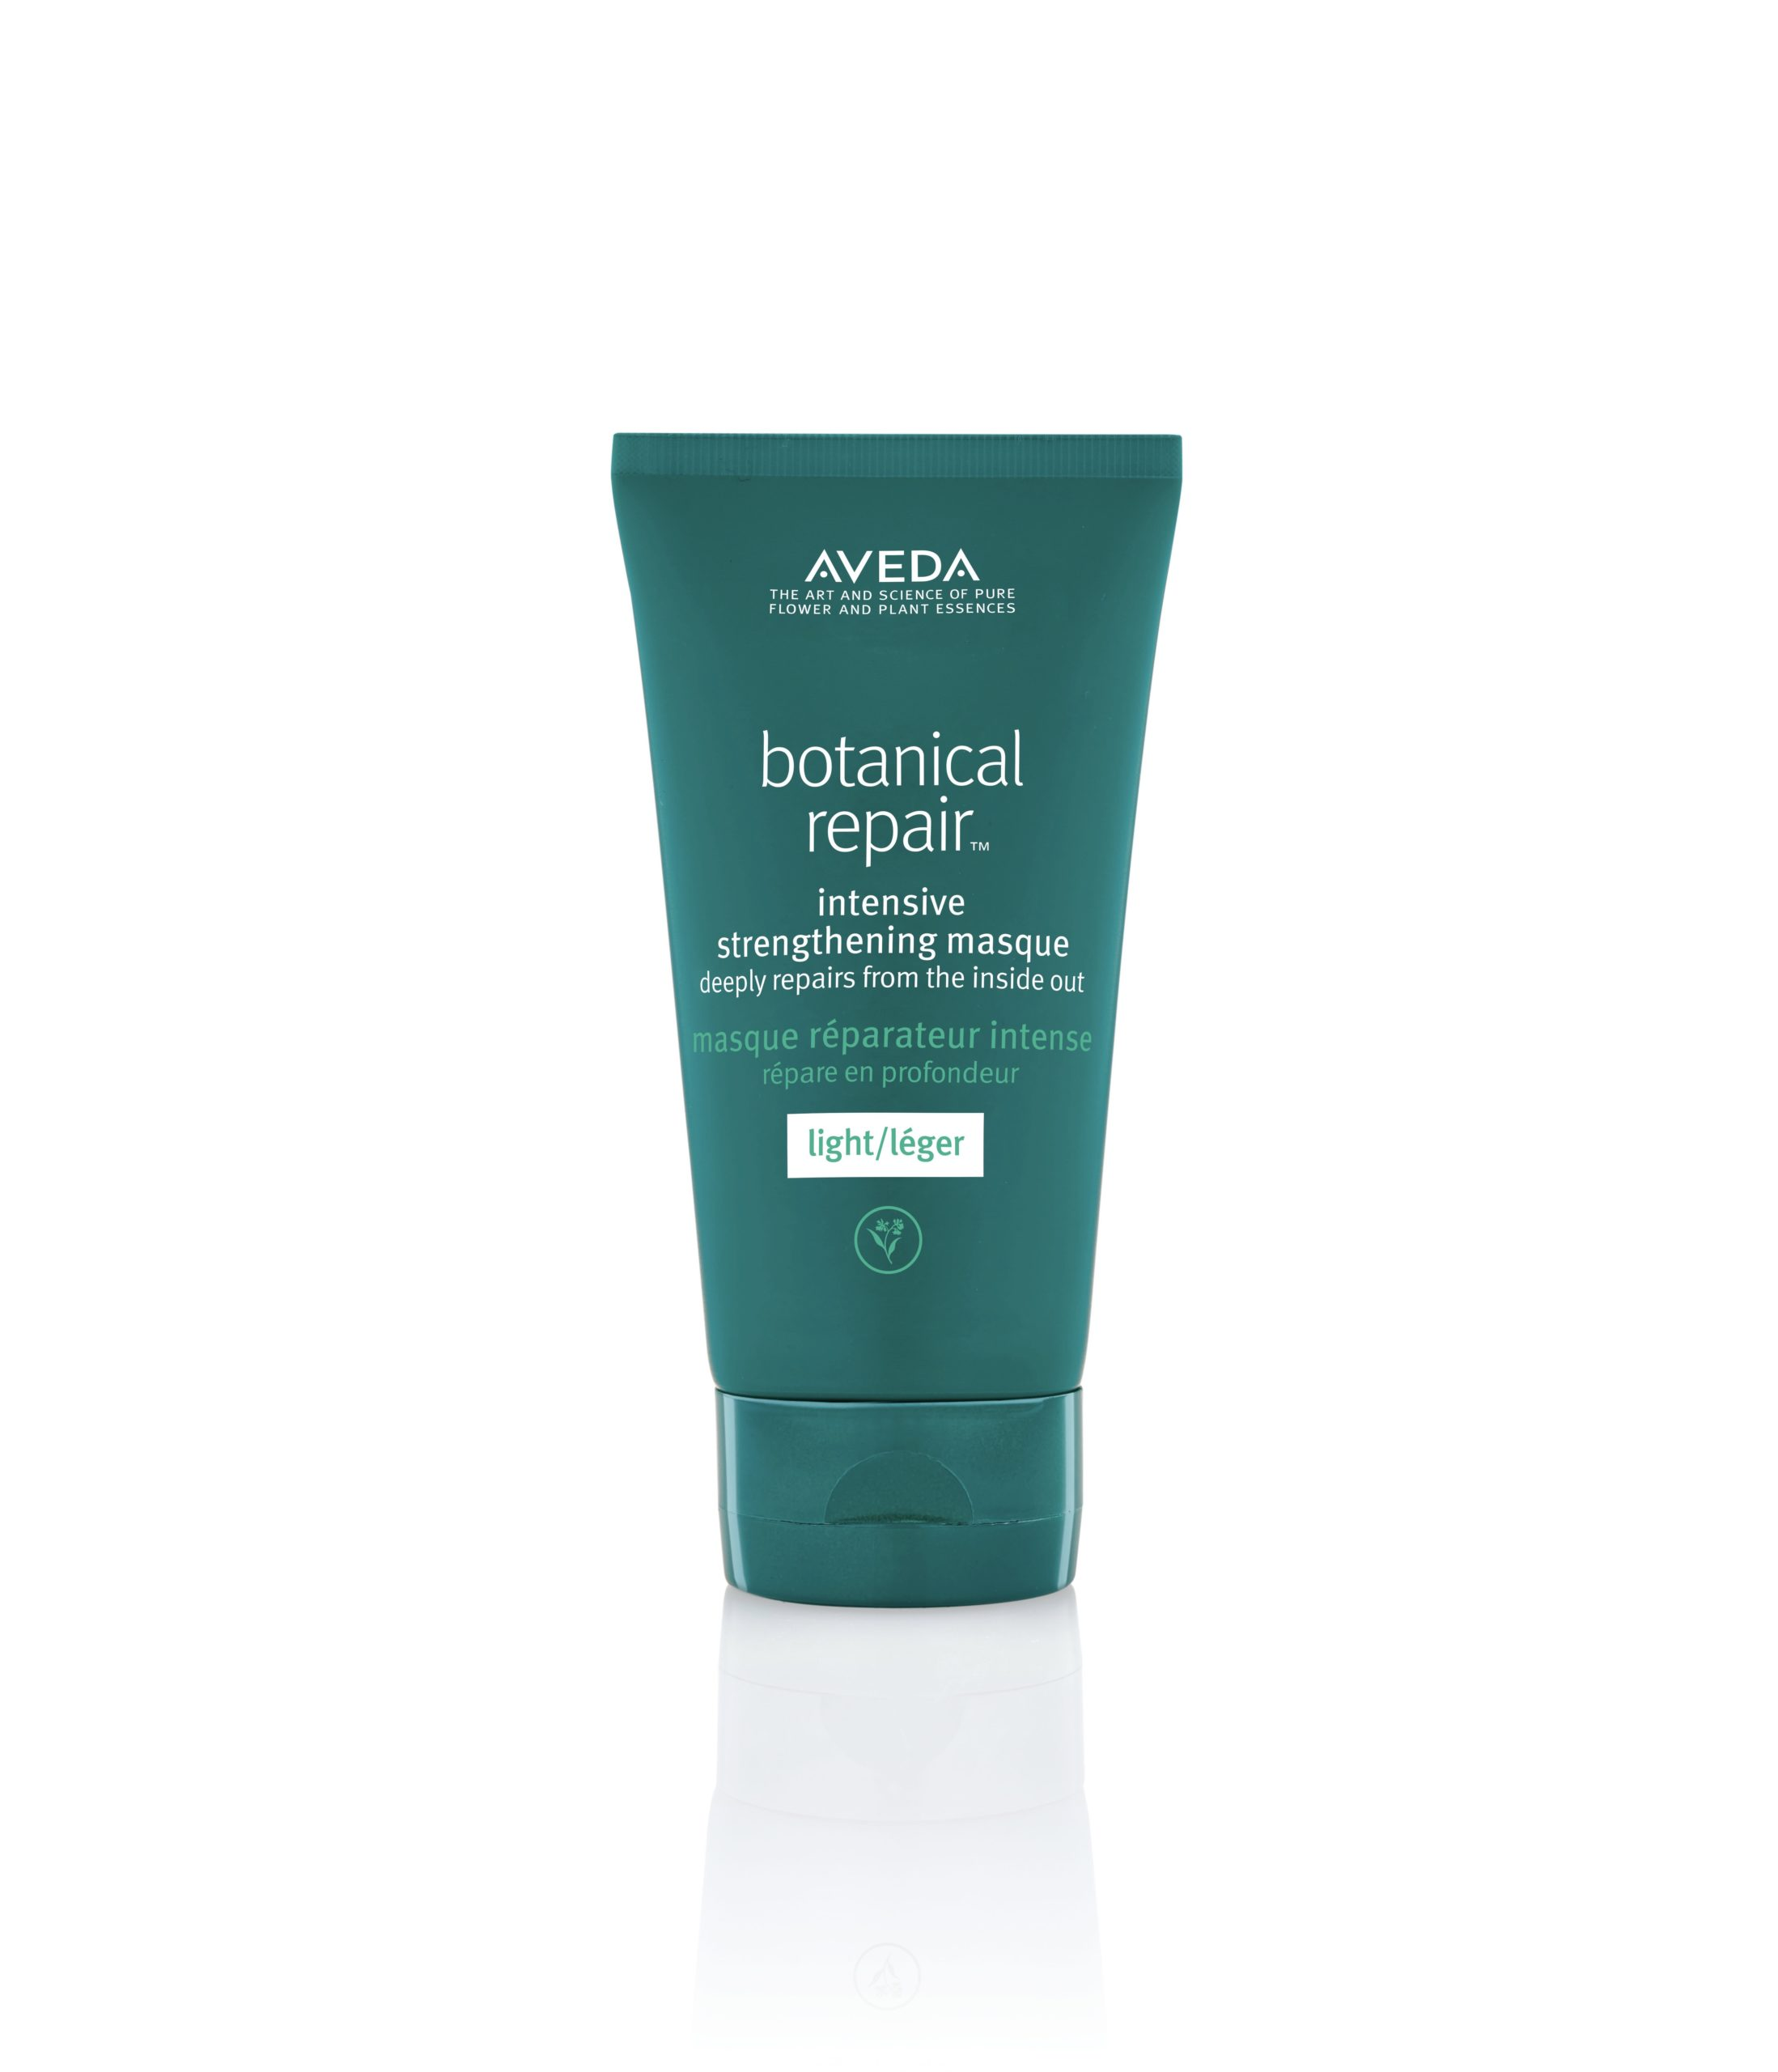 Восстанавливающая маска для волос Aveda Botanical repair intensive stregthening masque